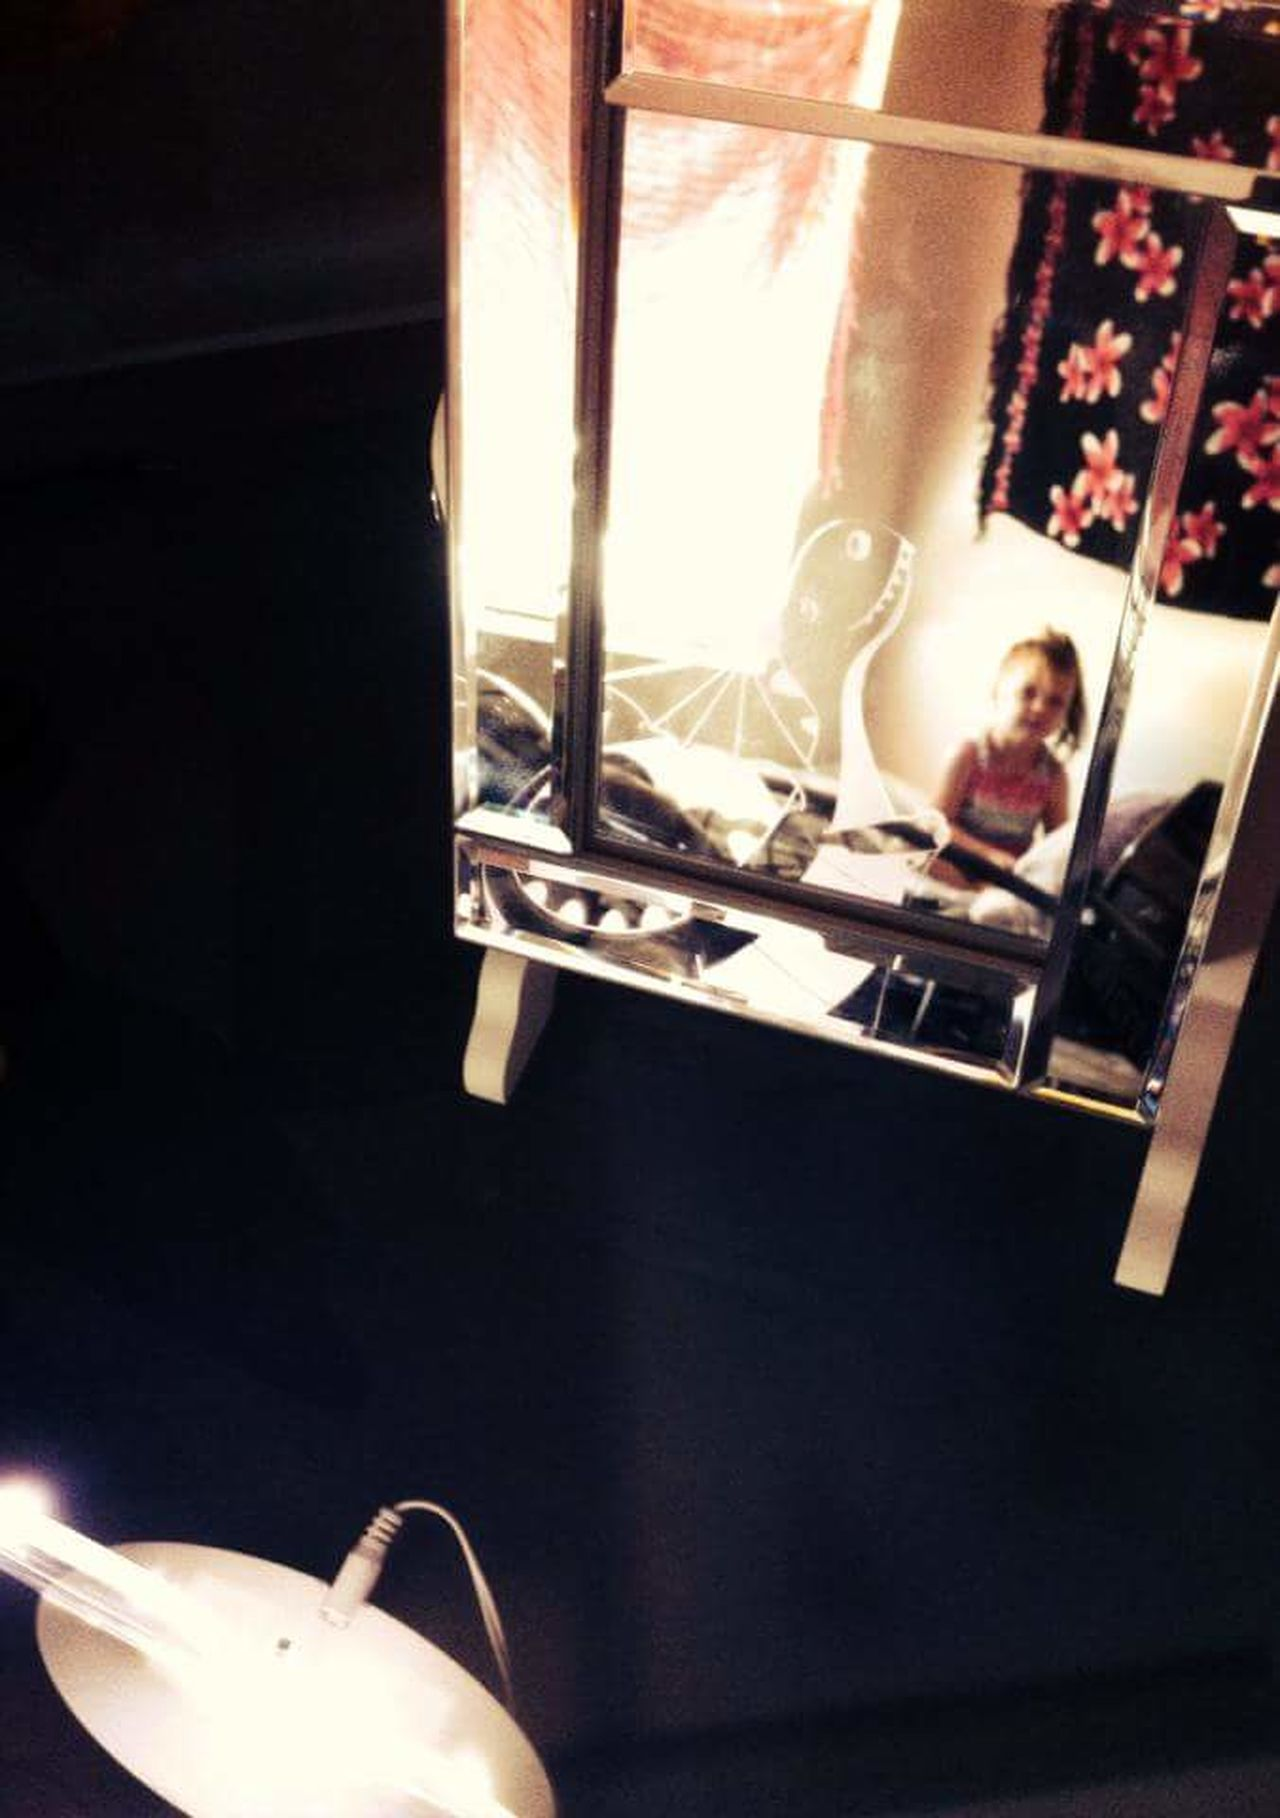 Mirror Picture Mirror Shot Domestic Room Indoors  Sister In Reflection Real People Smiling Children Photography Child Reflection In Mirror